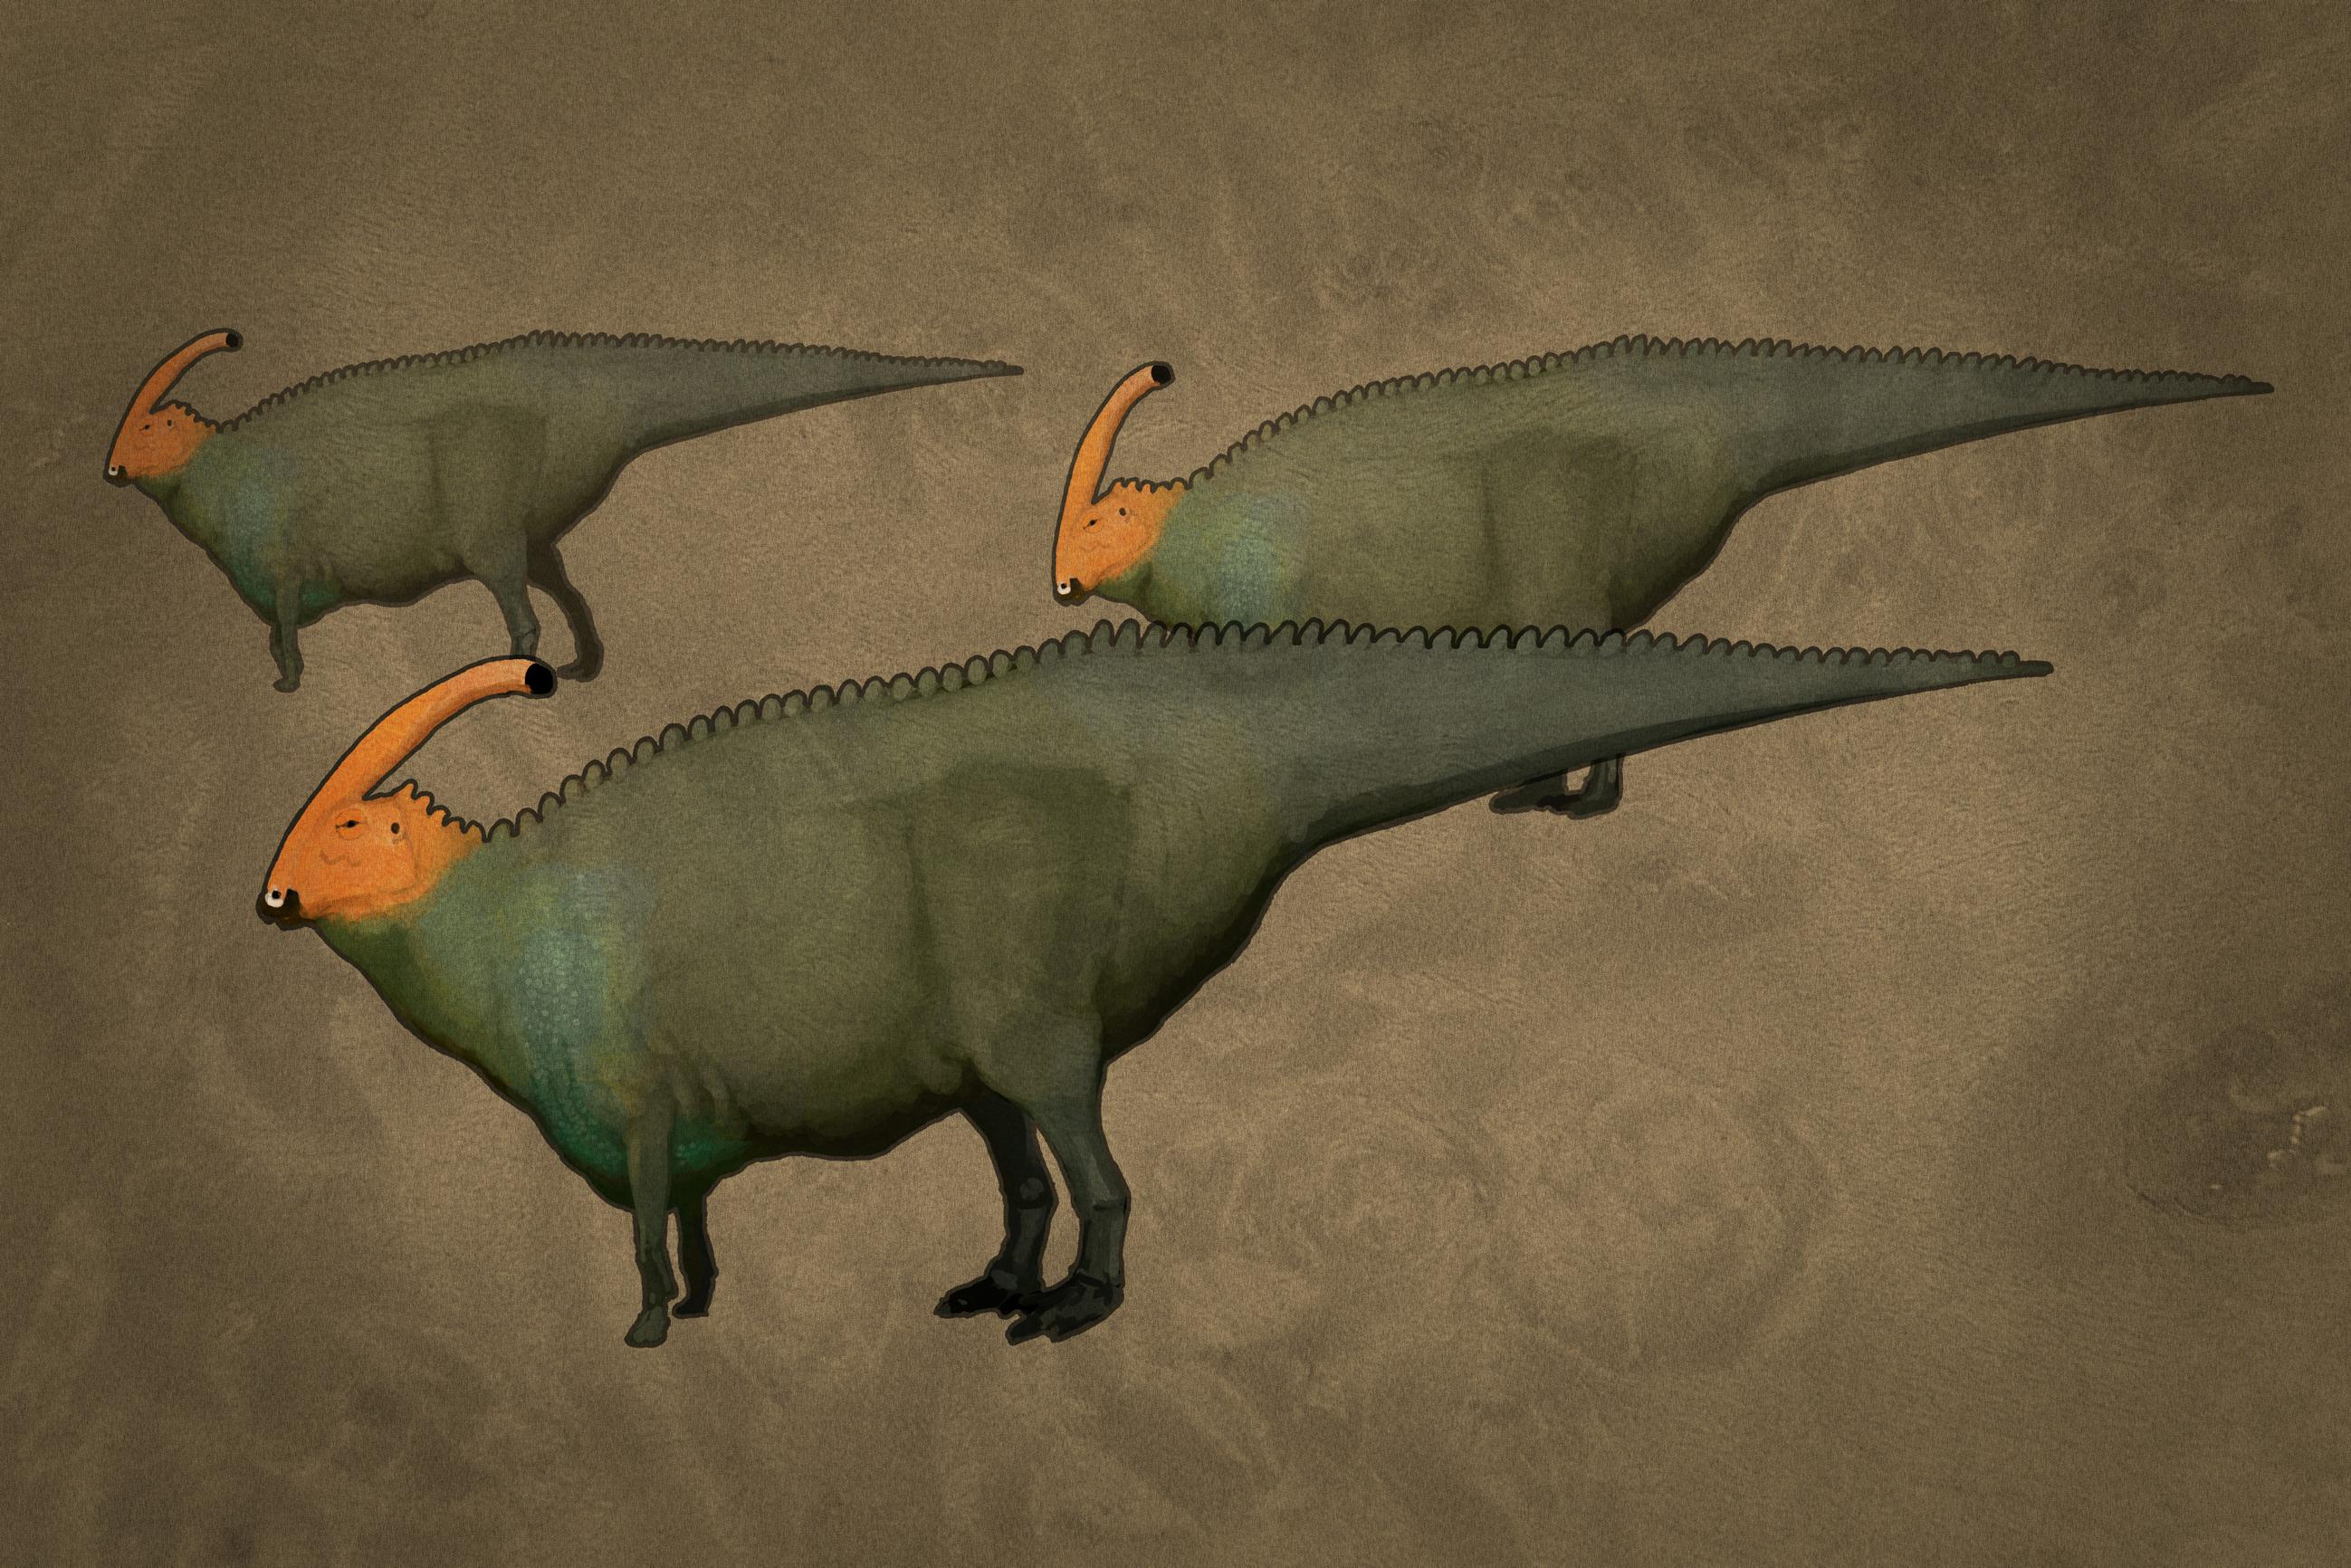 palaeo, painting, all yesterdays, all_yesterdays, dinosaurs, parasaurolophus, north america, speculative